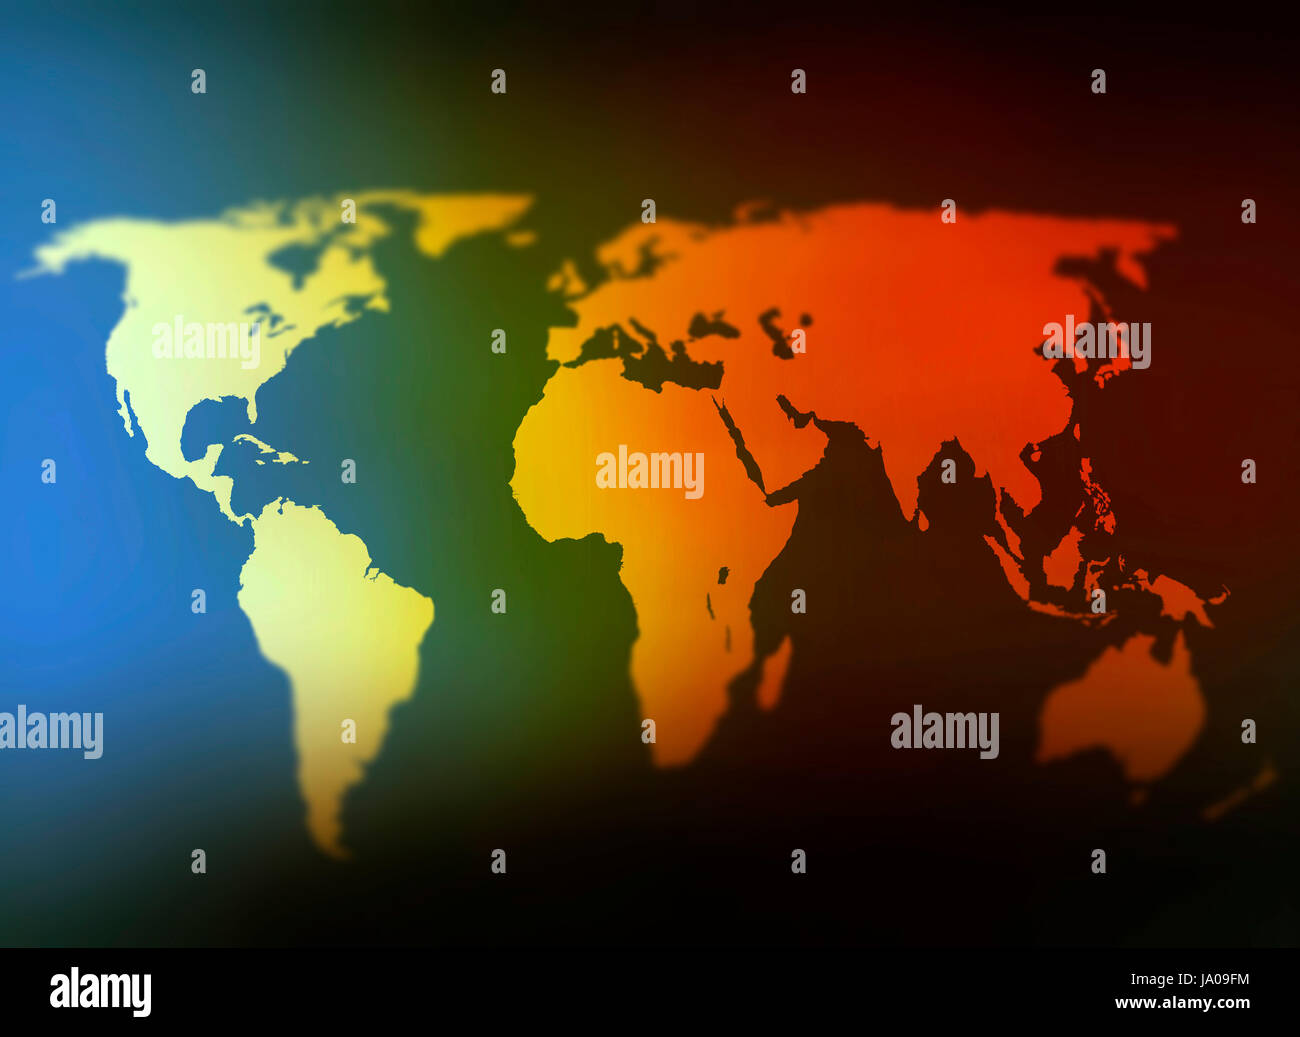 Map Planet Earth Night And Day Stock Photos & Map Planet Earth Night ...